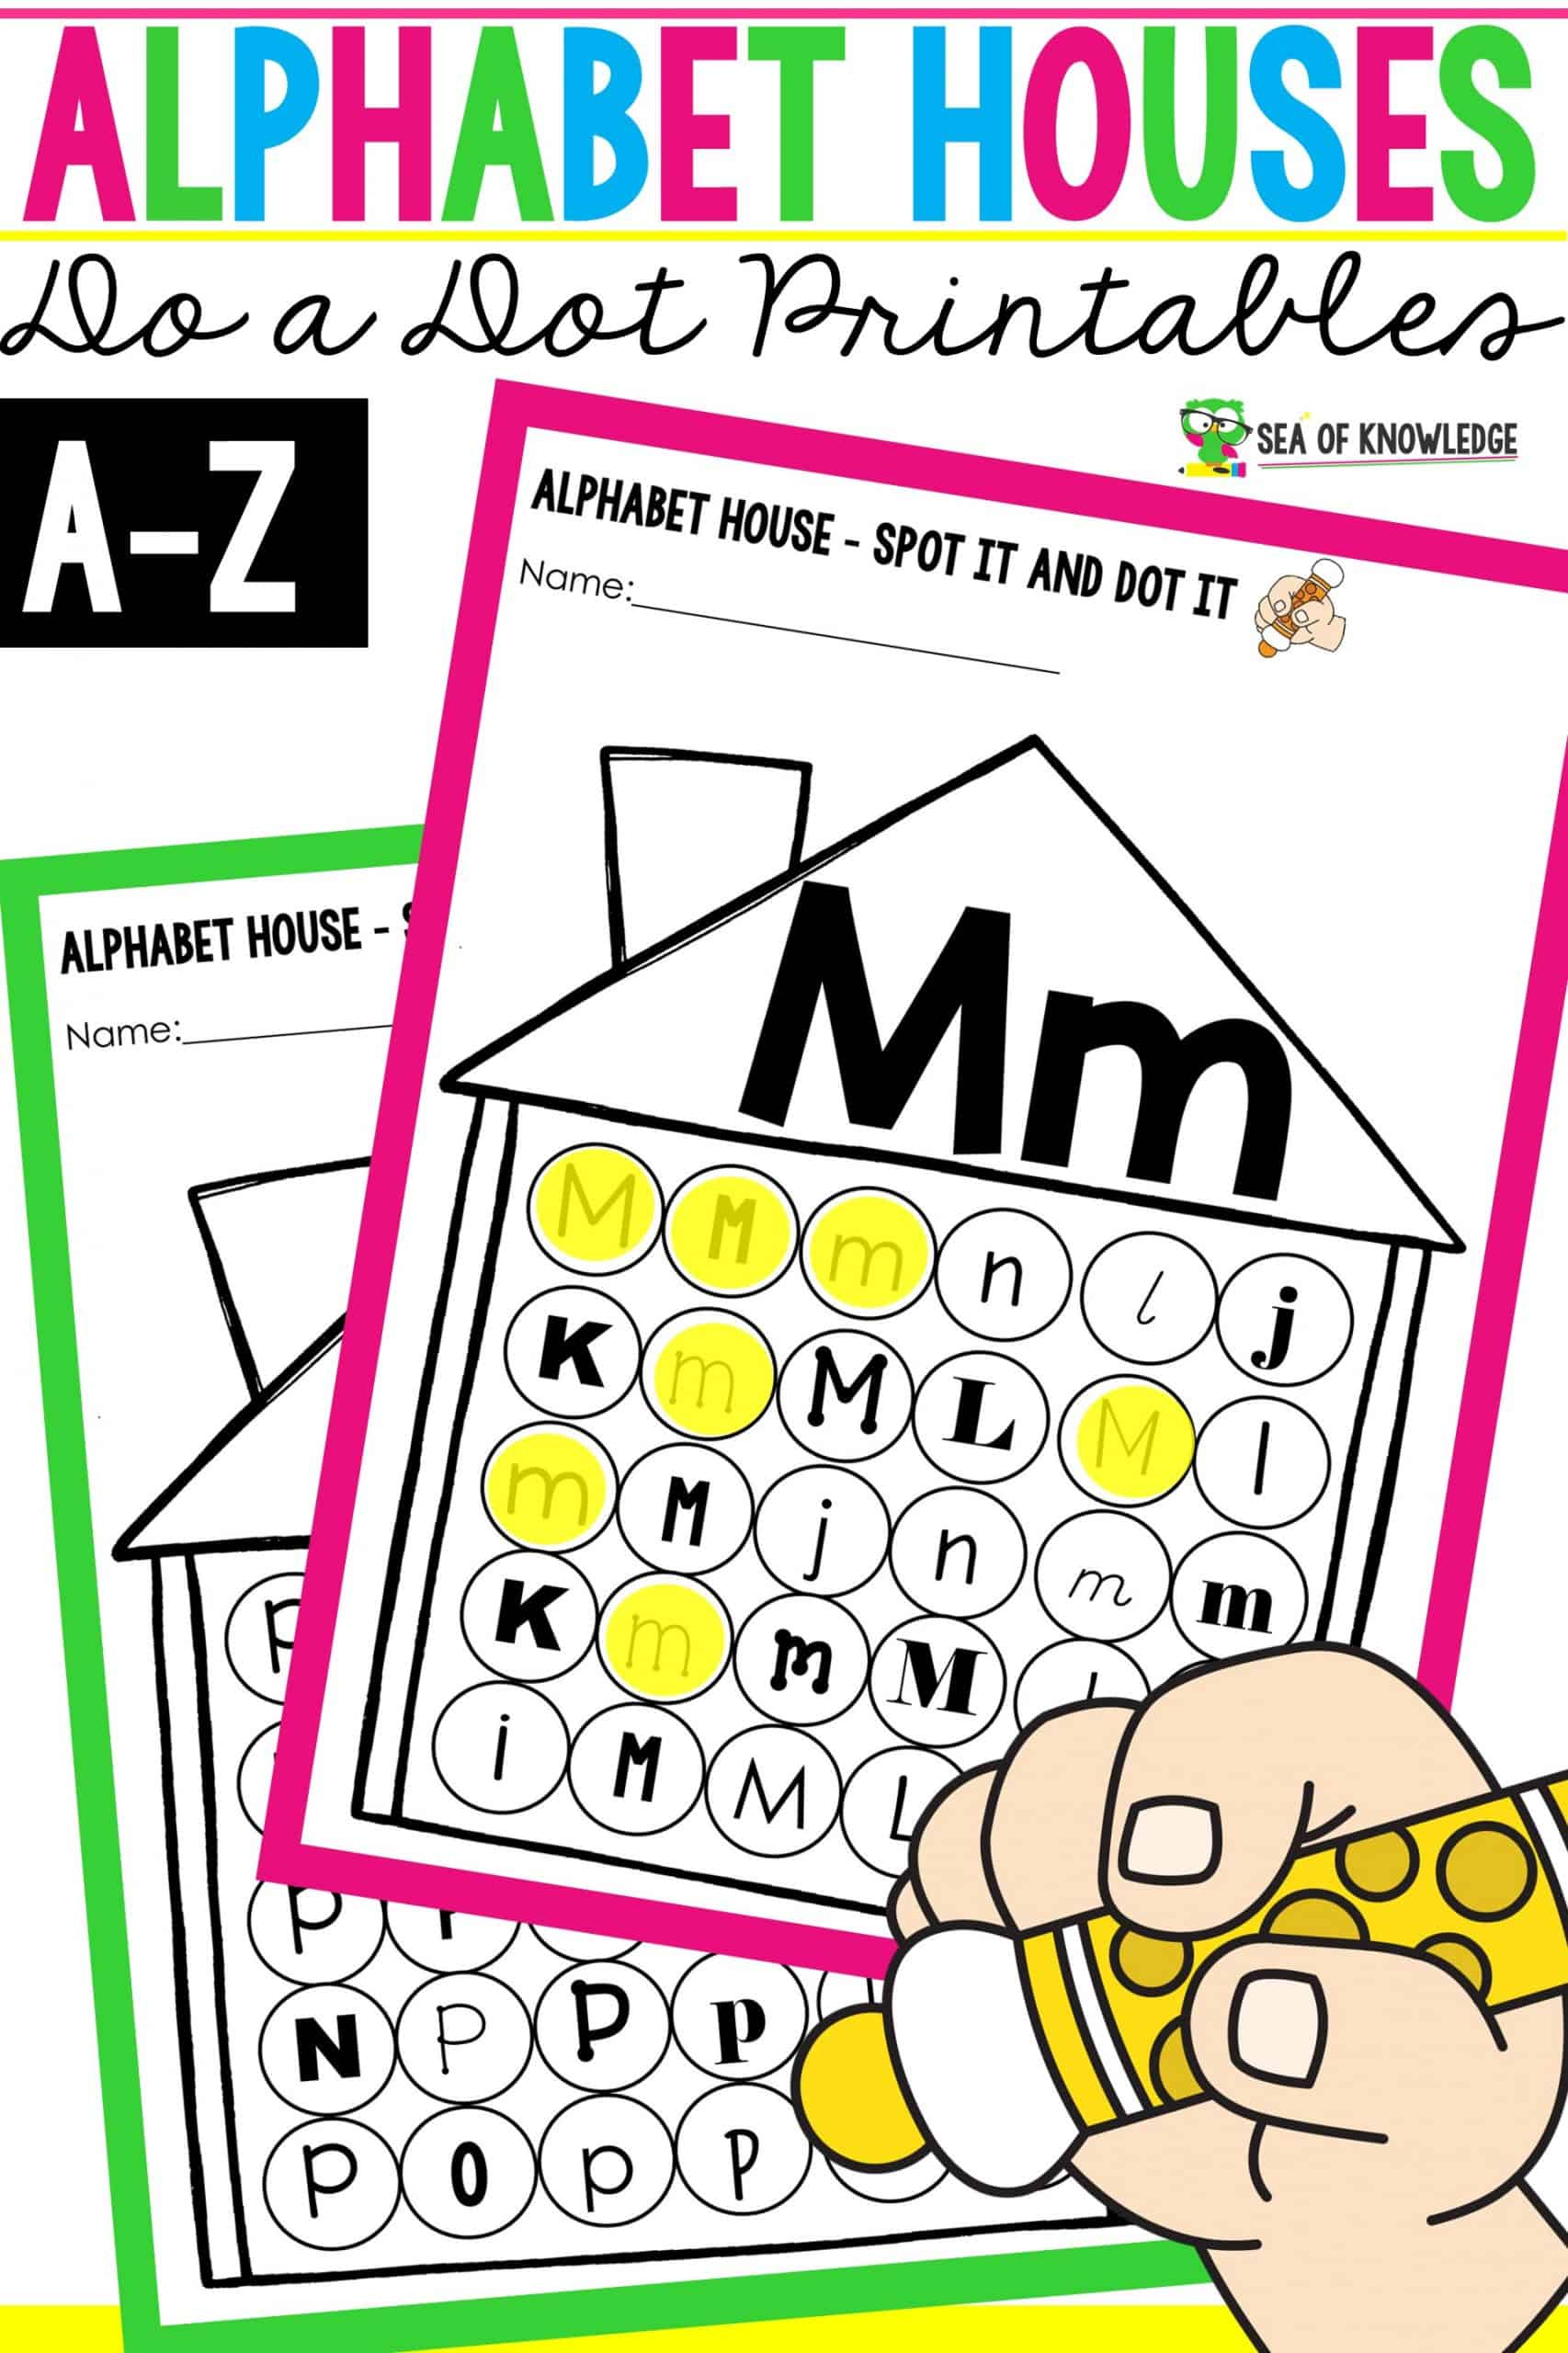 Looking for a fun way to get kindergarten kids to learn to letter recognition and practise fine motor skills at the same time? This Alphabet Dab a Dot Printable Book includes A-Z printable pages that features houses and dab circles for the kids to identify and dab the featuring letter.